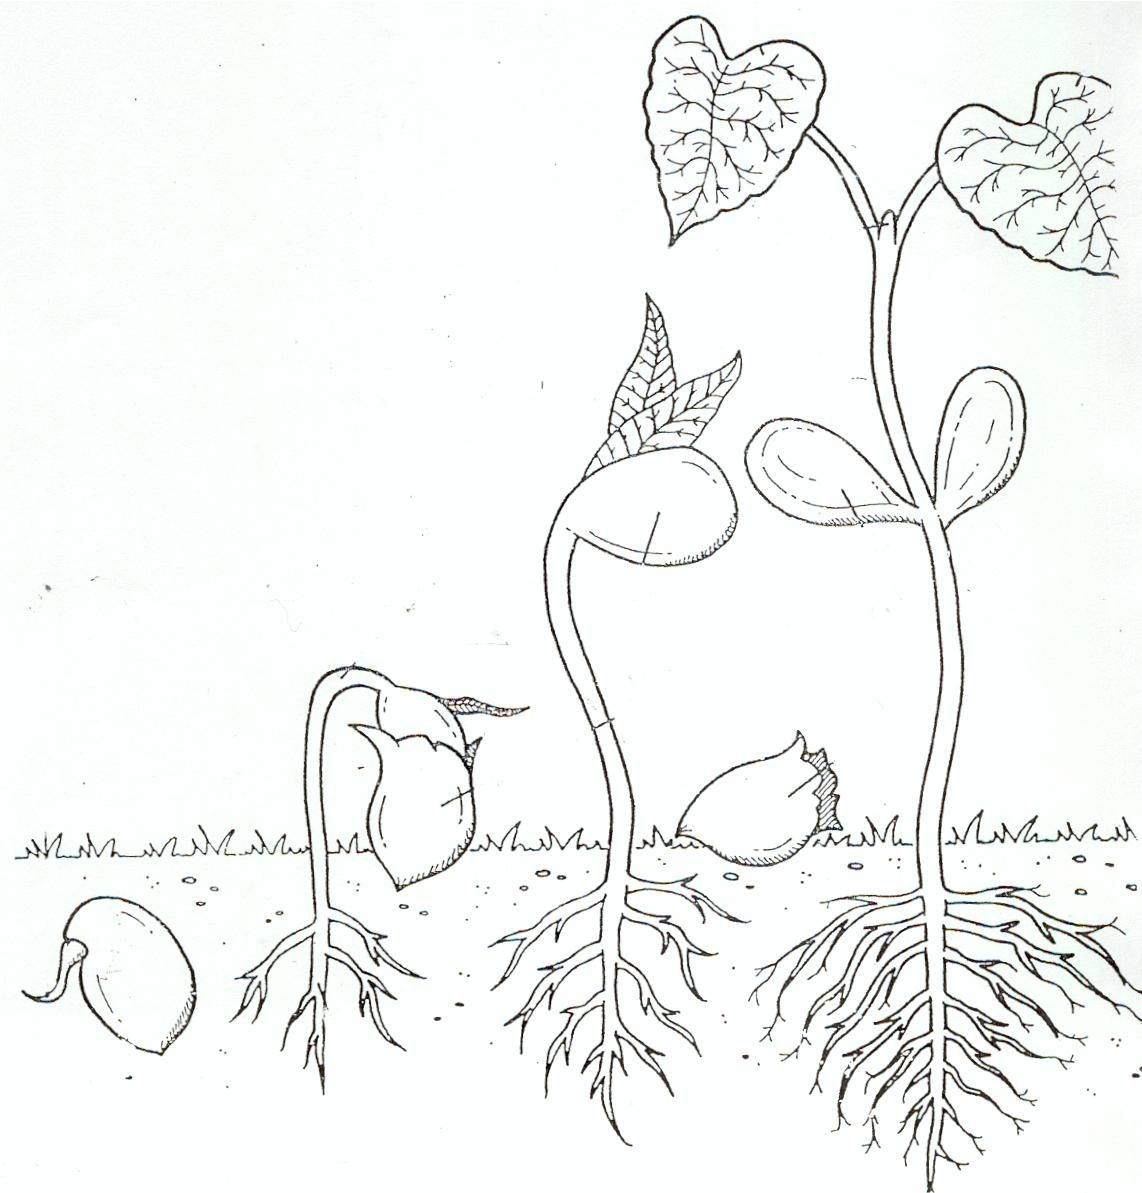 Life Cycle Coloring Page Of A Seed To Plant A